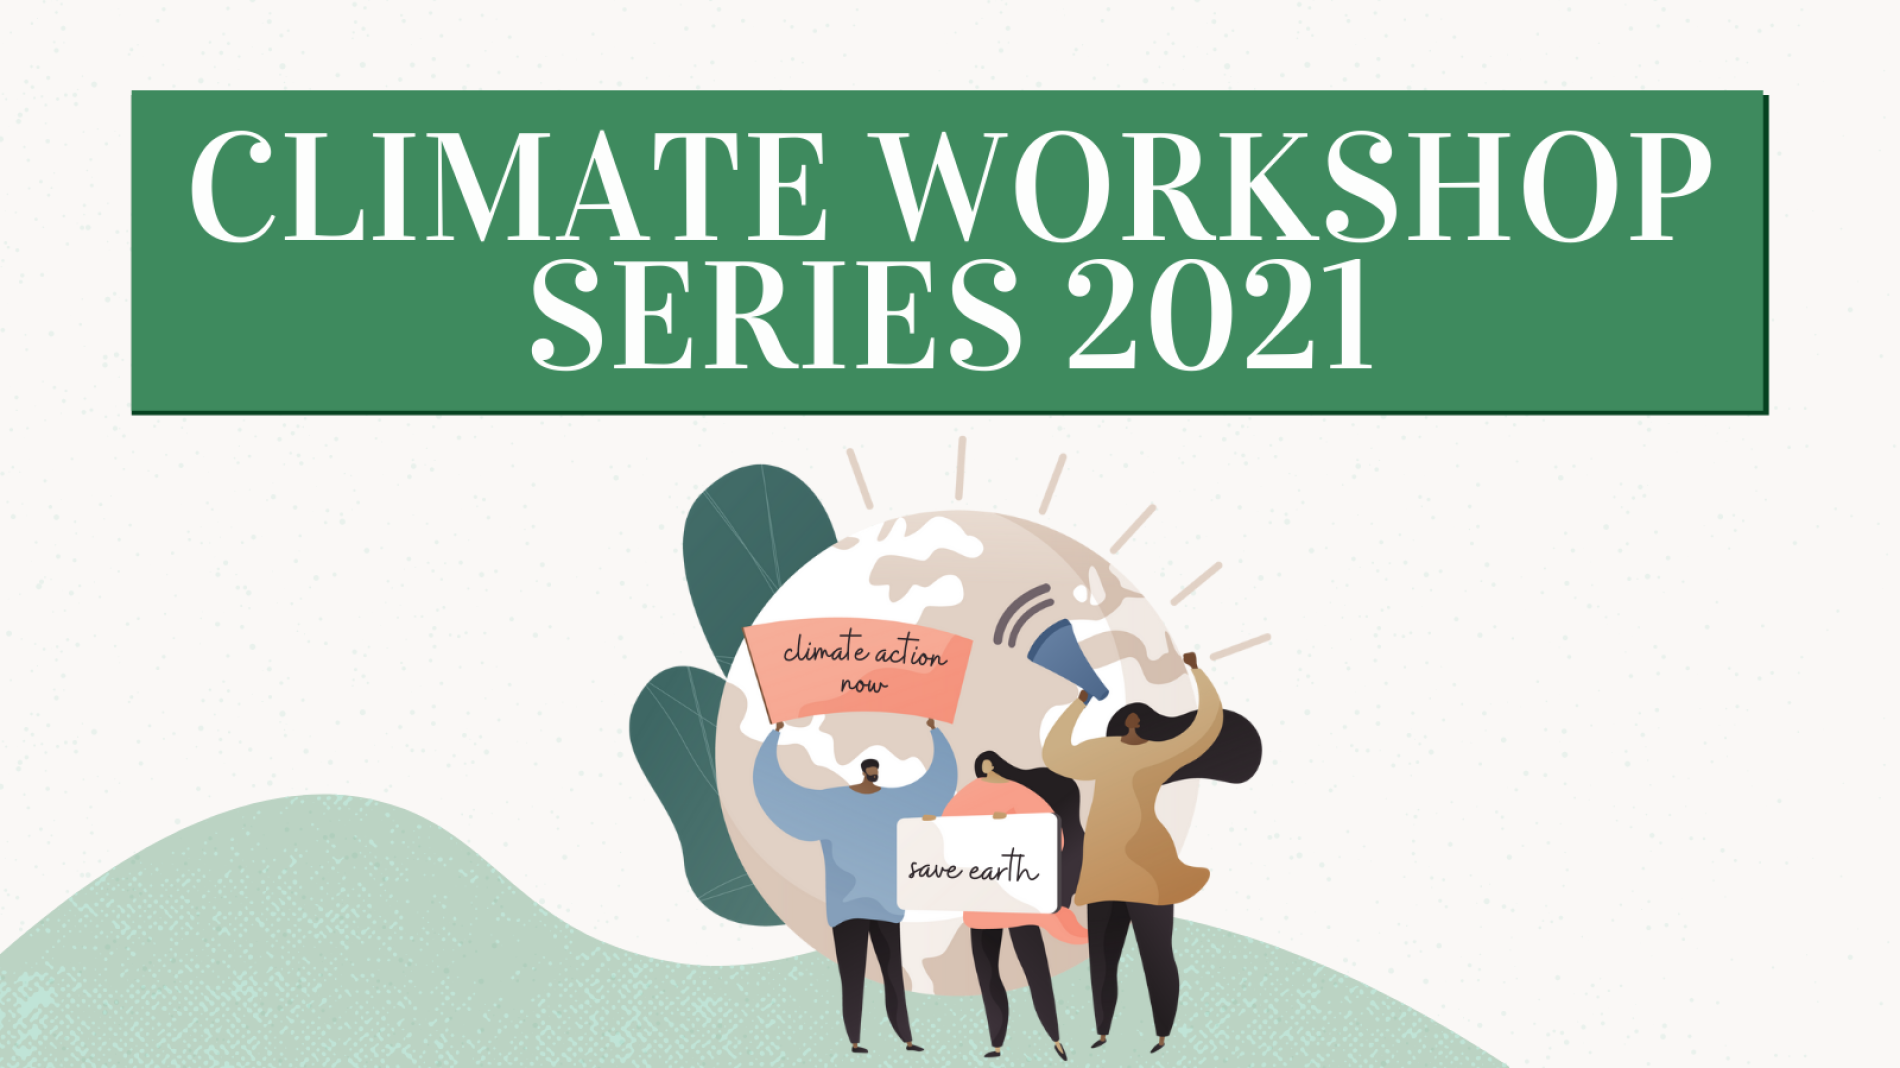 spunout - Climate Workhop - Website Cover